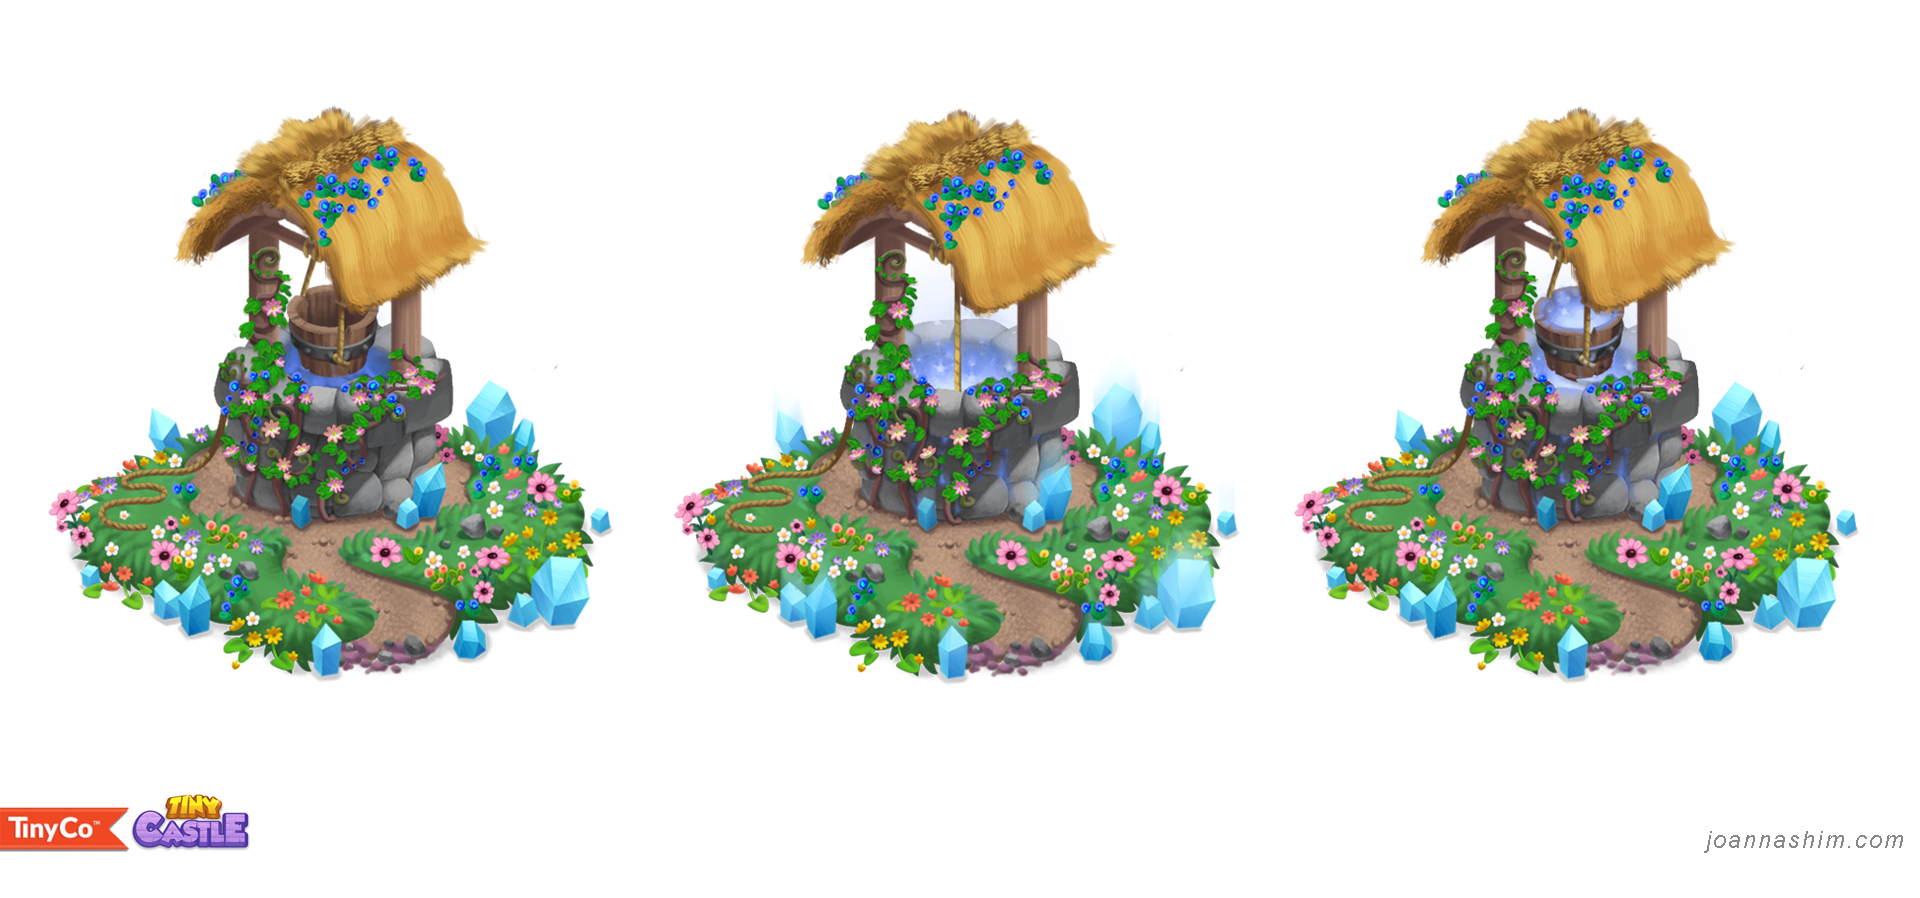 Tiny Castle - Spring Well